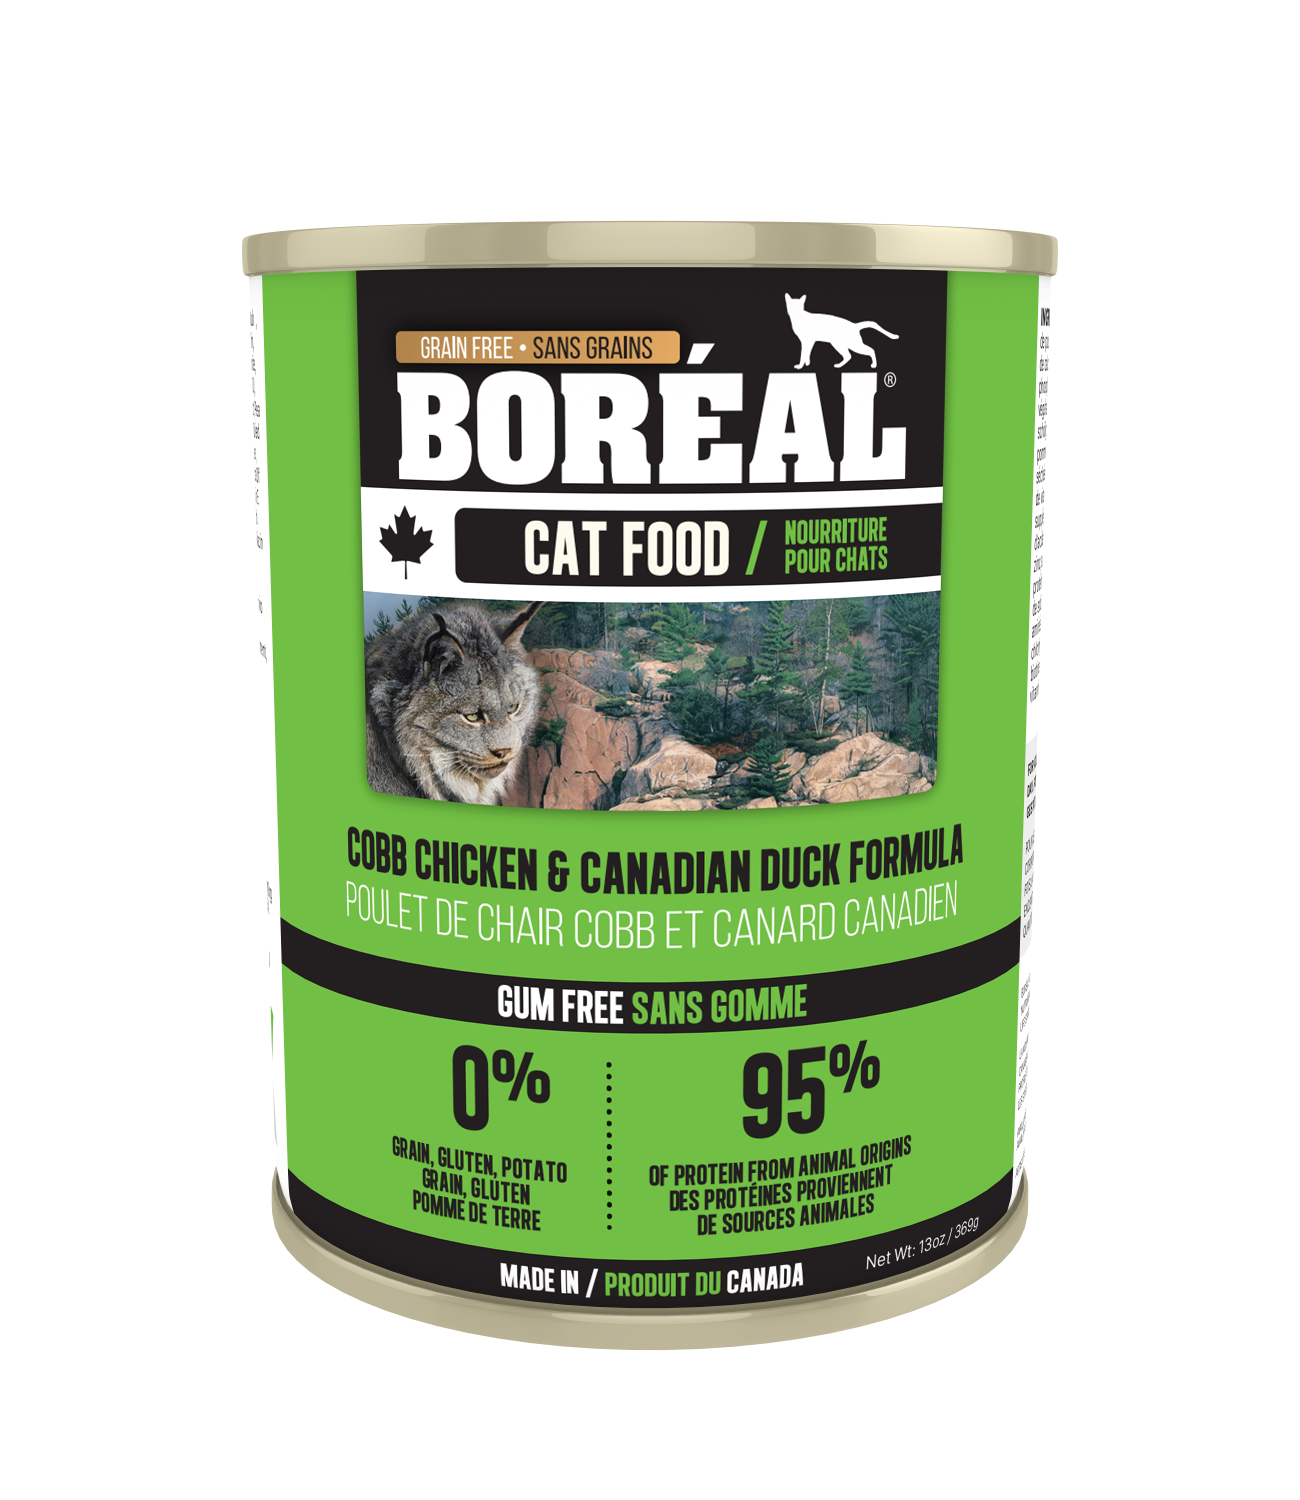 Boreal Cobb Chicken and Canadian Duck Grain-Free Canned Cat Food, 156g can